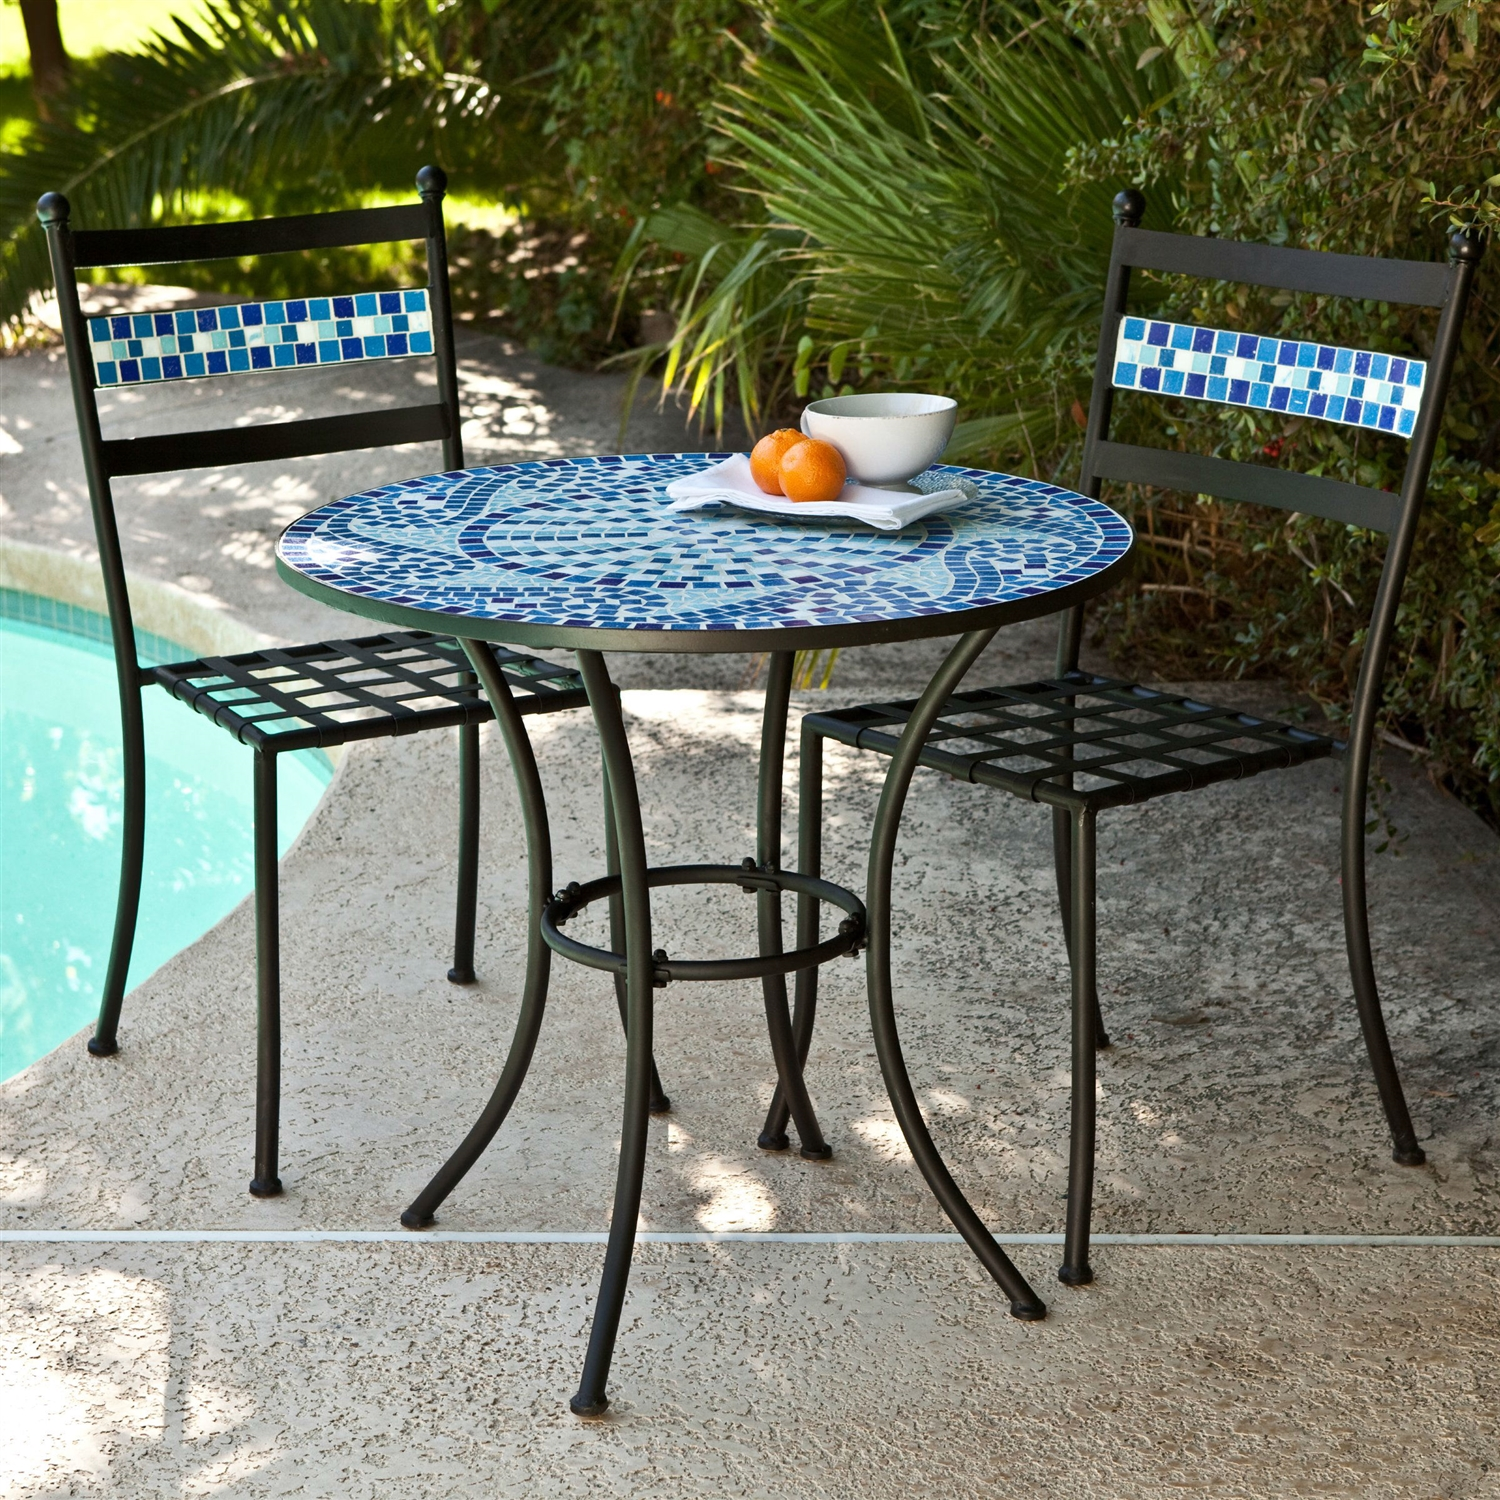 Outdoor 3-piece Aqua Blue Mosaic Tiles Patio Furniture